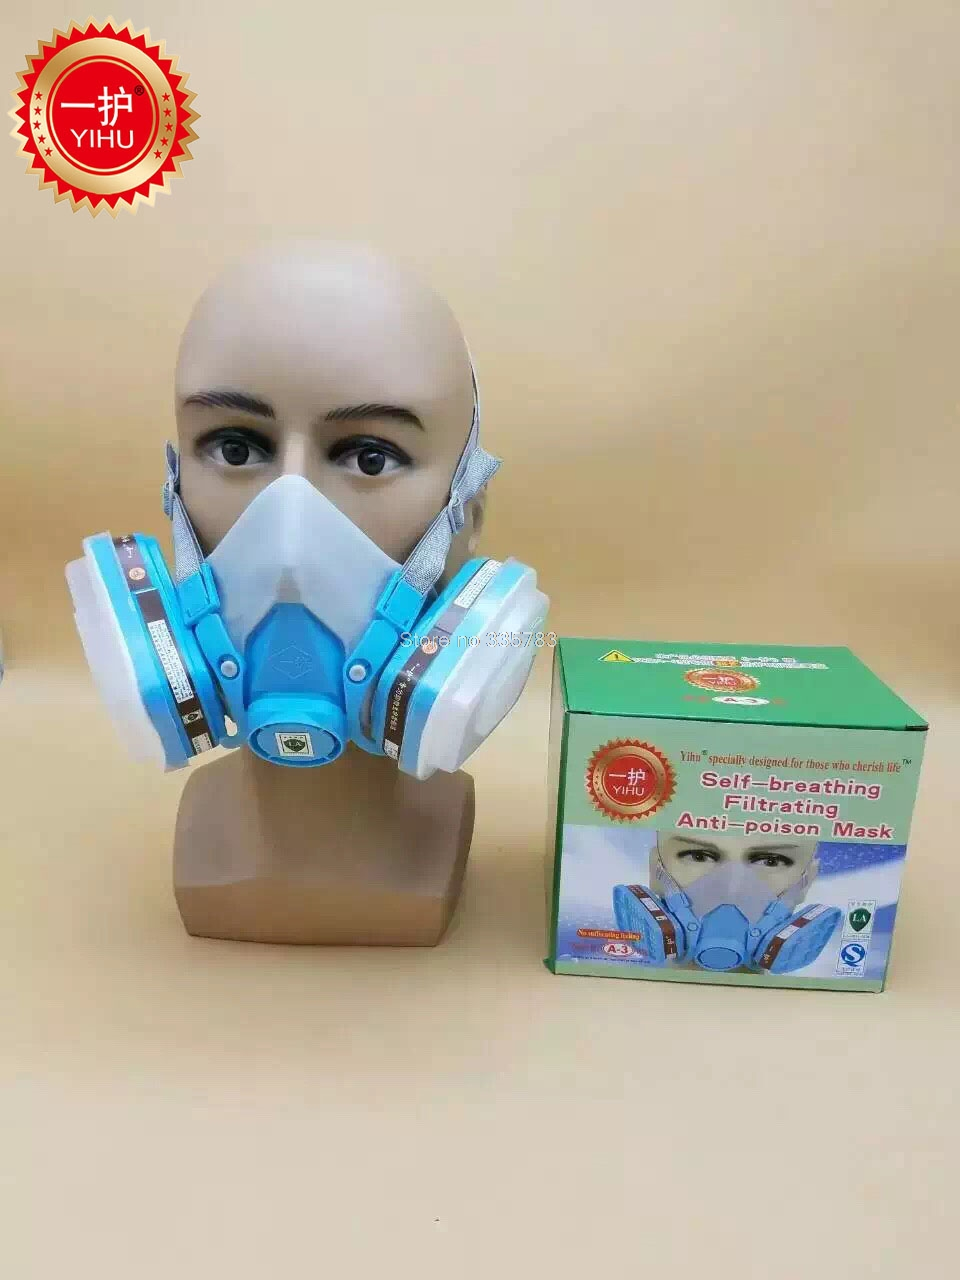 YIHU Respirator Gas Mask Silica Gel Green Protective Mask Pesticides Paint Industrial Safety Respirator Face Mask